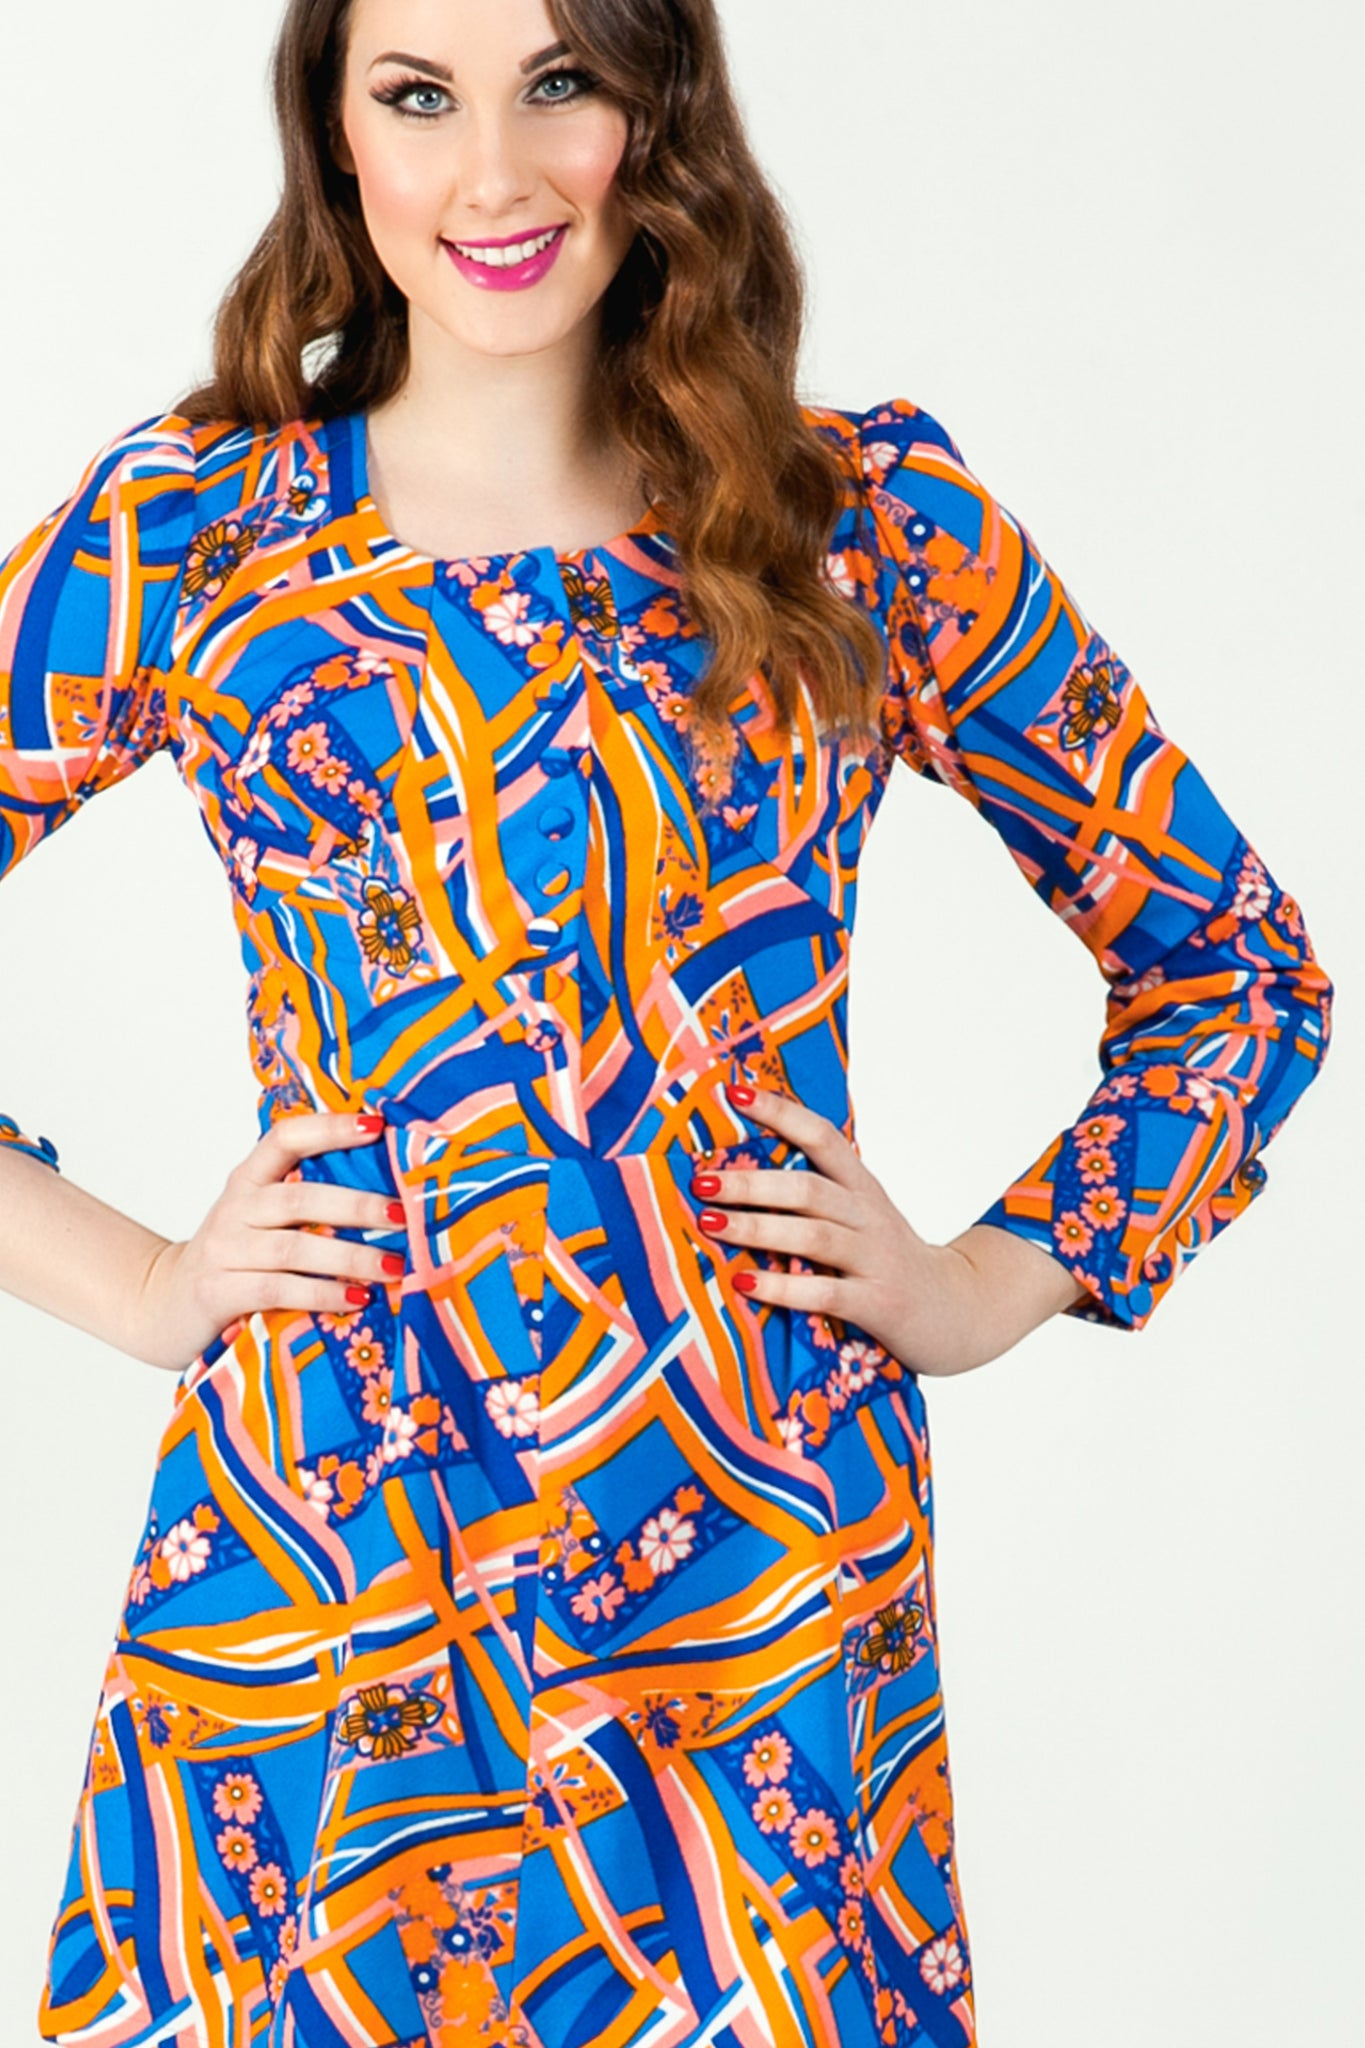 60's vintage mini dress - SoLovesVintage